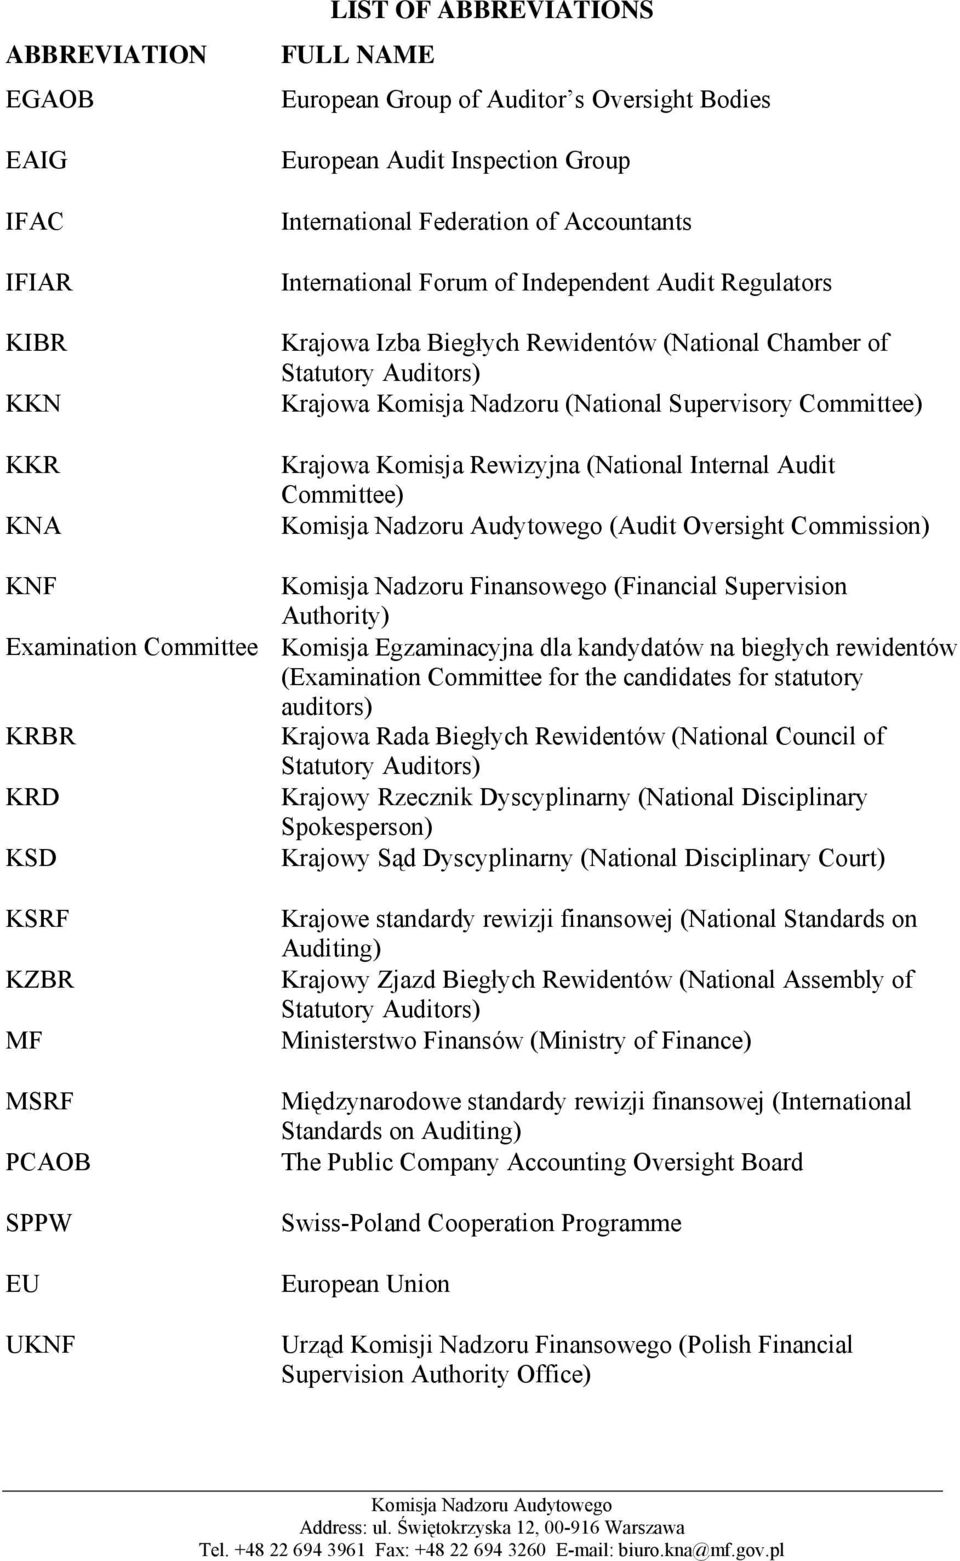 Auditors) Krajowa Komisja Nadzoru (National Supervisory Committee) Krajowa Komisja Rewizyjna (National Internal Audit Committee) (Audit Oversight Commission) Komisja Nadzoru Finansowego (Financial